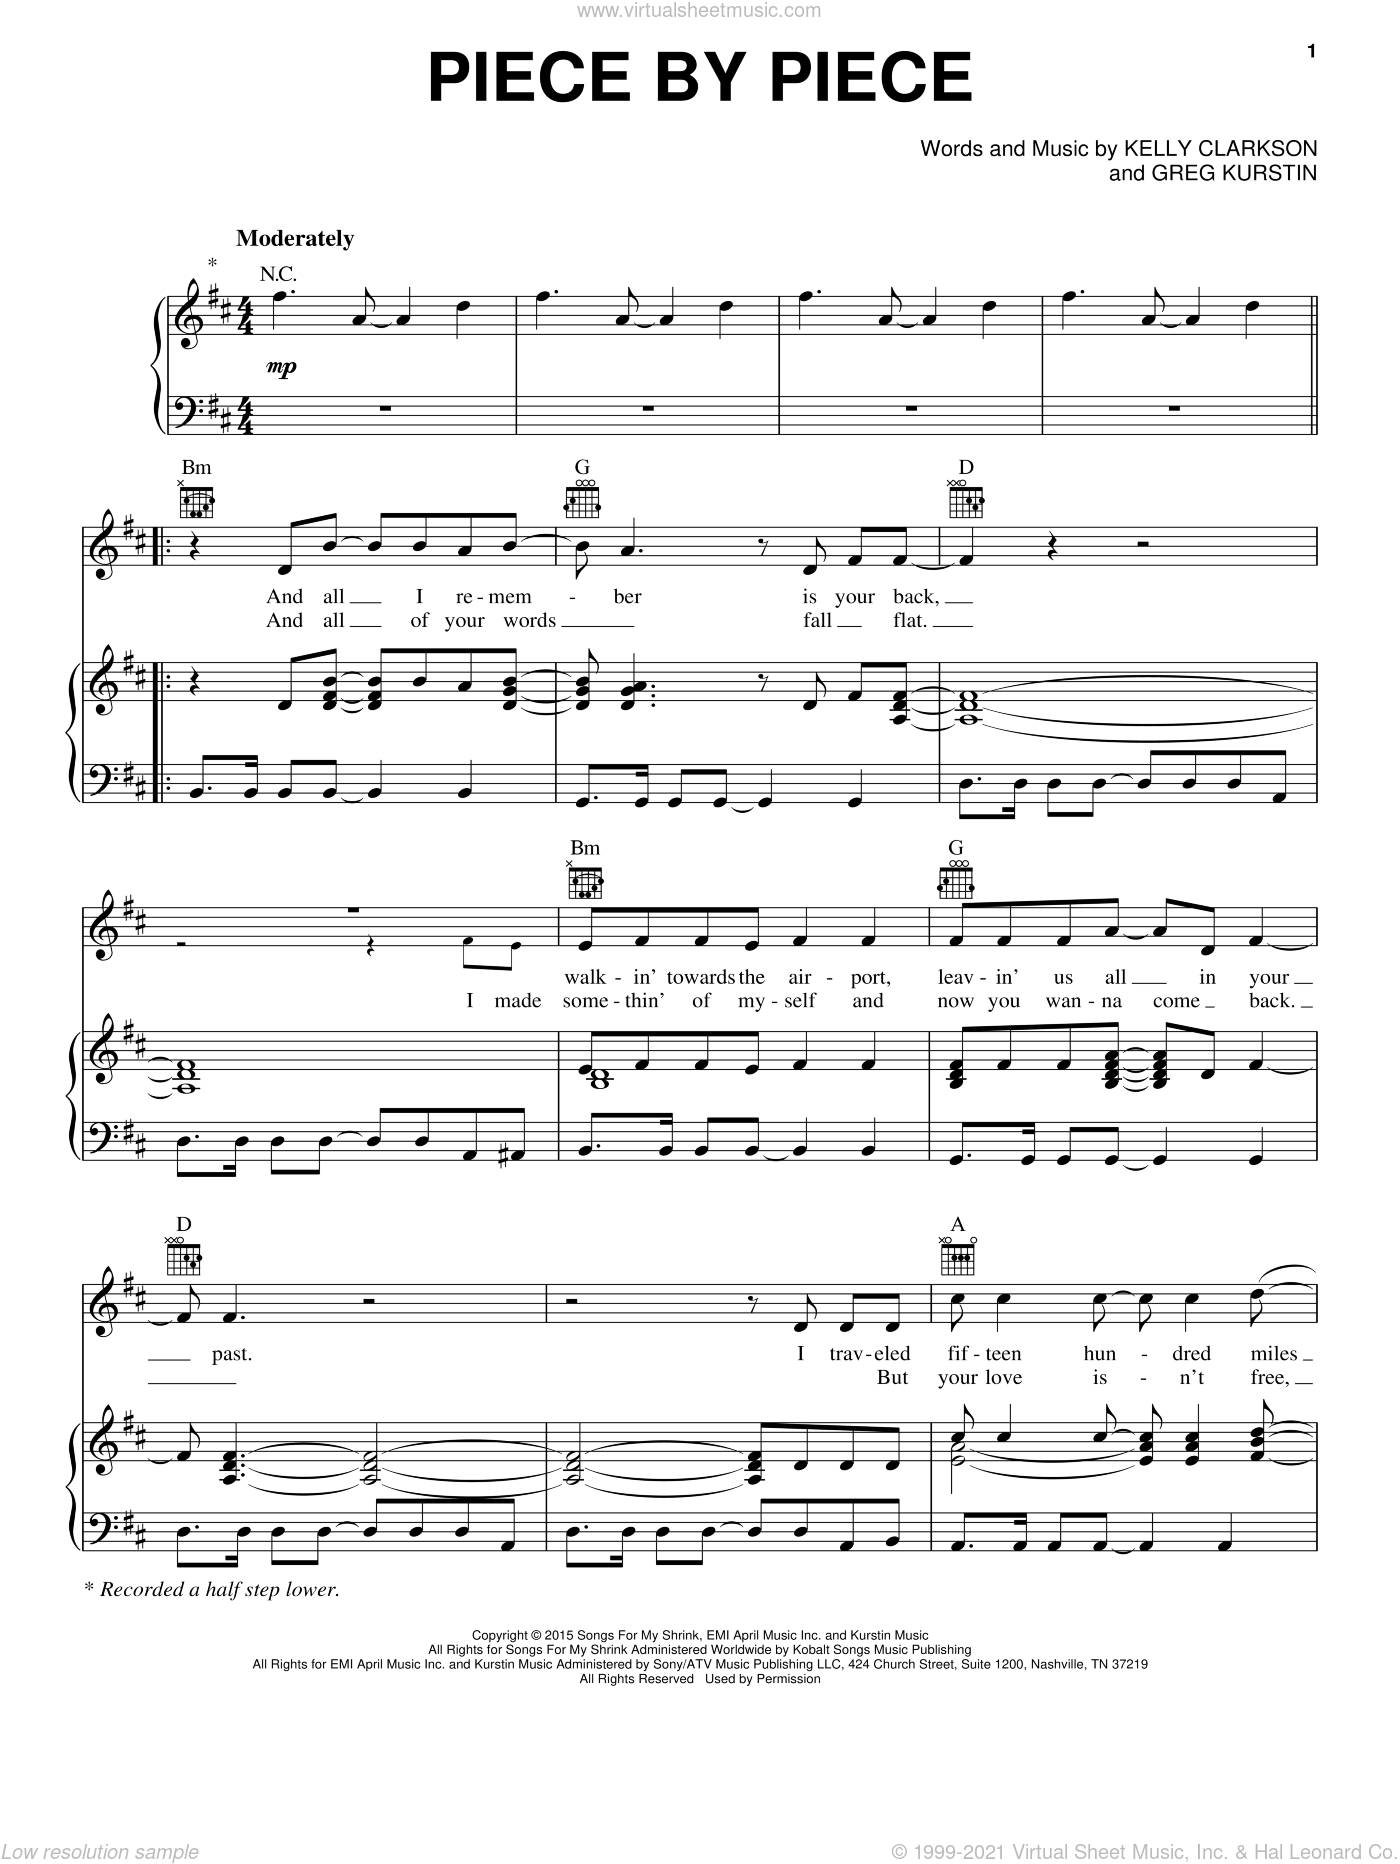 Piece By Piece sheet music for voice, piano or guitar by Kelly Clarkson and Greg Kurstin, intermediate skill level